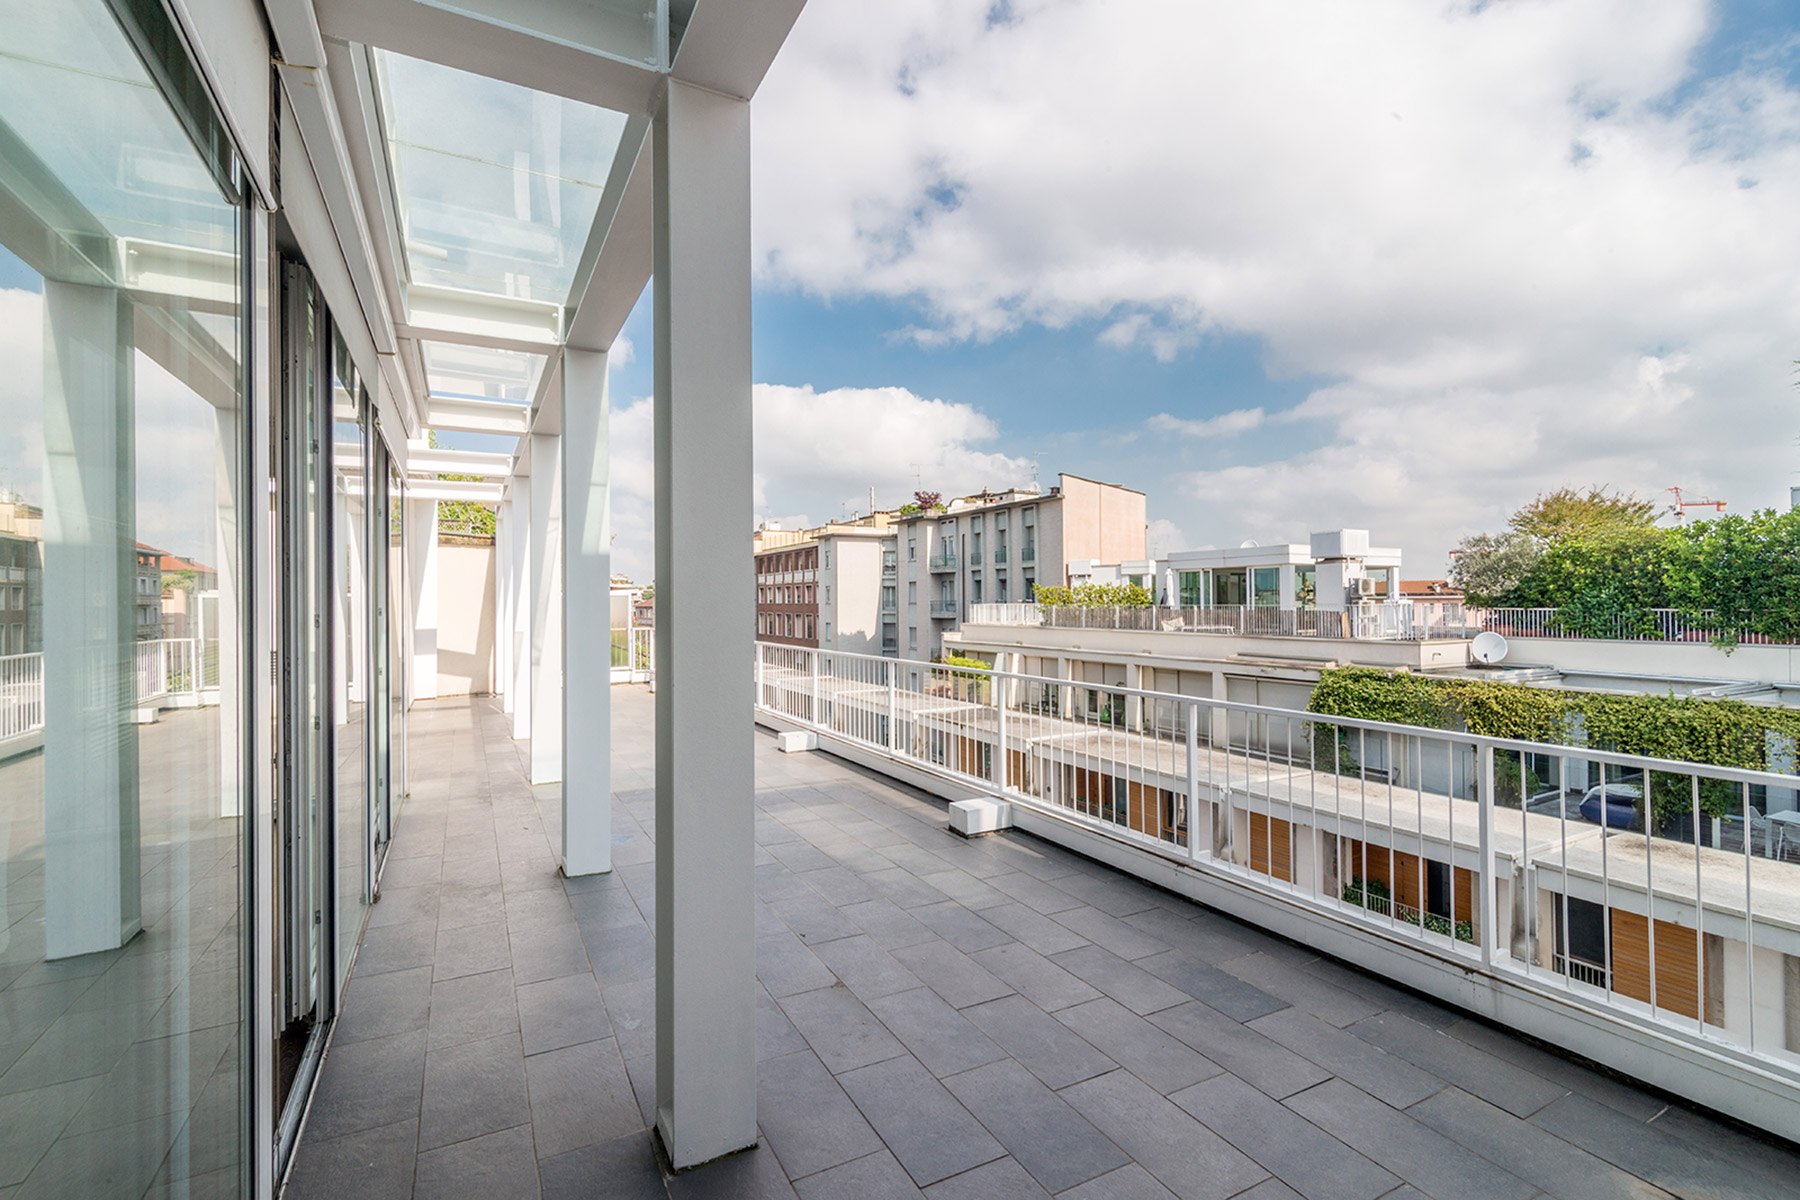 Additional photo for property listing at Panoramic apartment in a recently renovated building Via della moscova Milano, Milan 20121 Italy